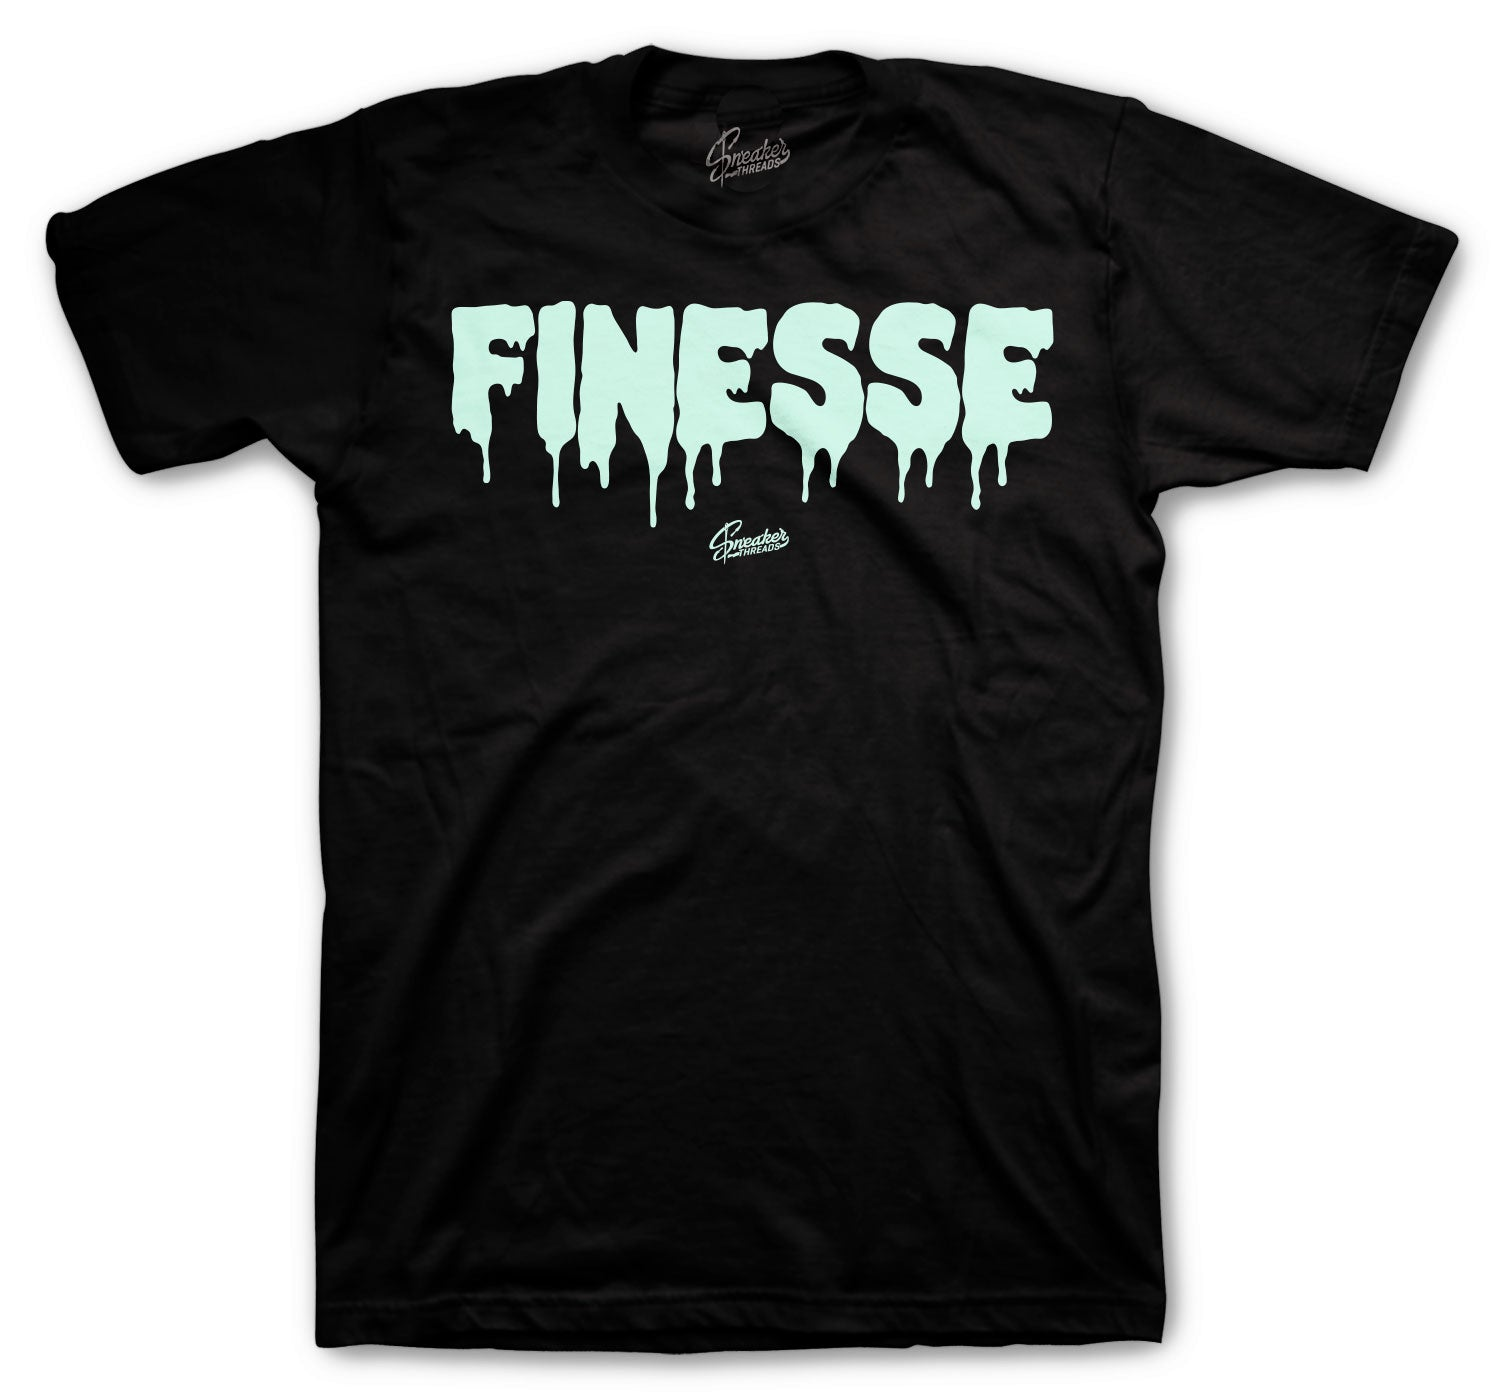 Barely Green All Star Shirt - Finesse - Black